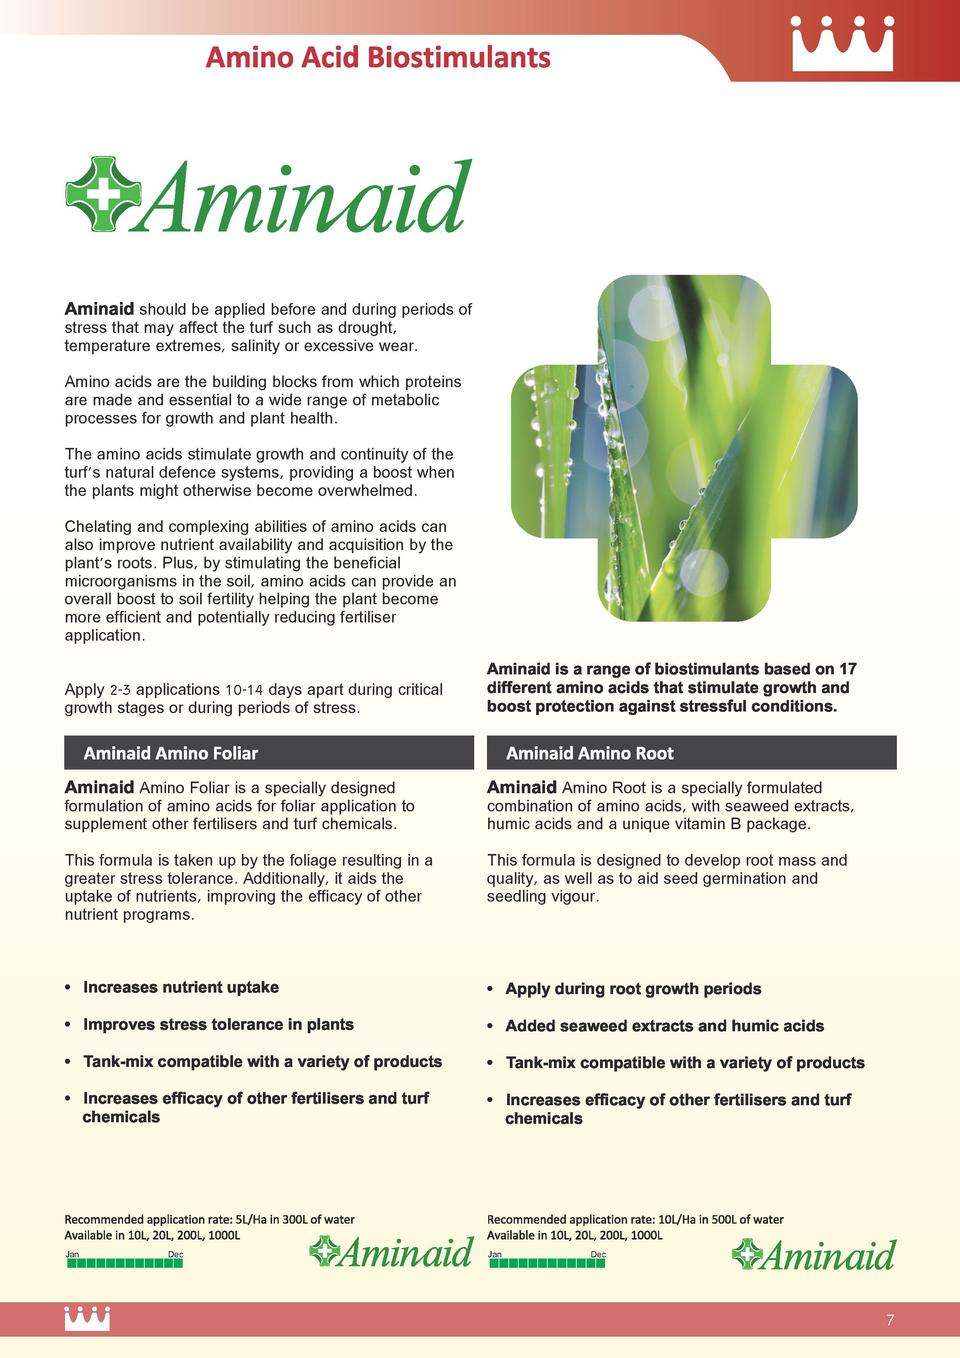 Aminaid should be applied before and during periods of stress that may affect the turf such as drought, temperature extrem...